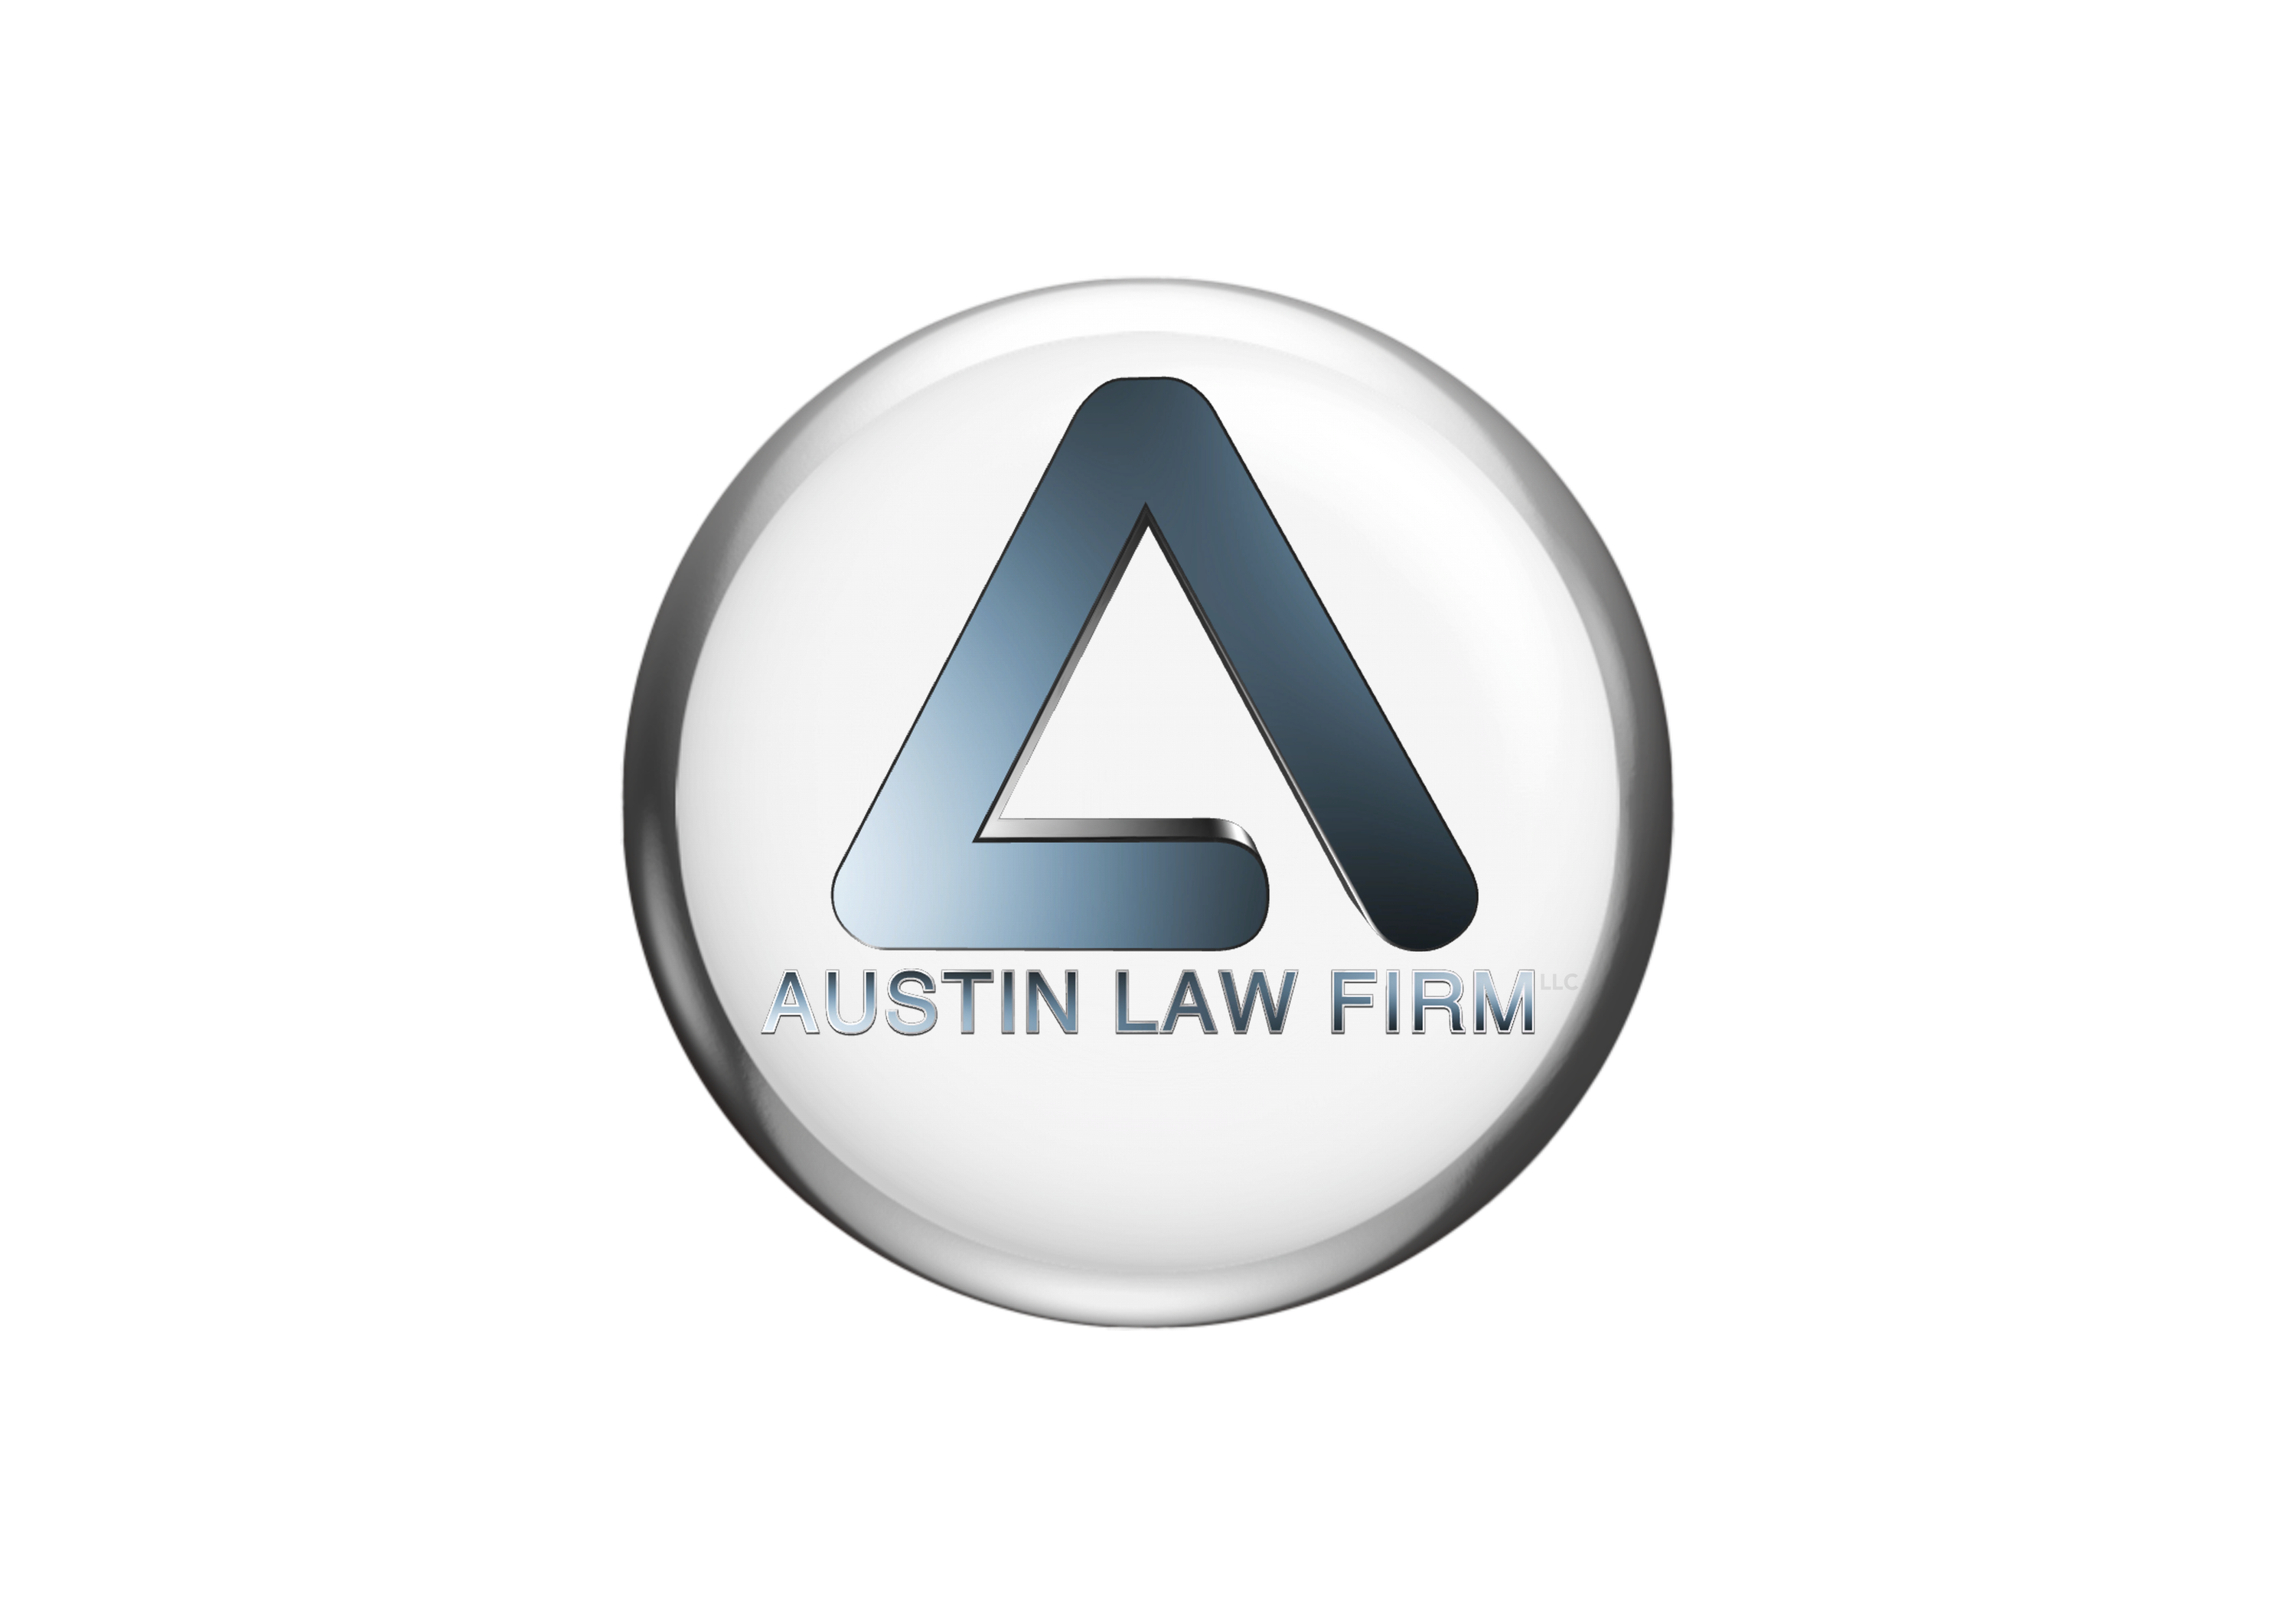 Simple, contemporary 3D logo created for Austin Law Firm